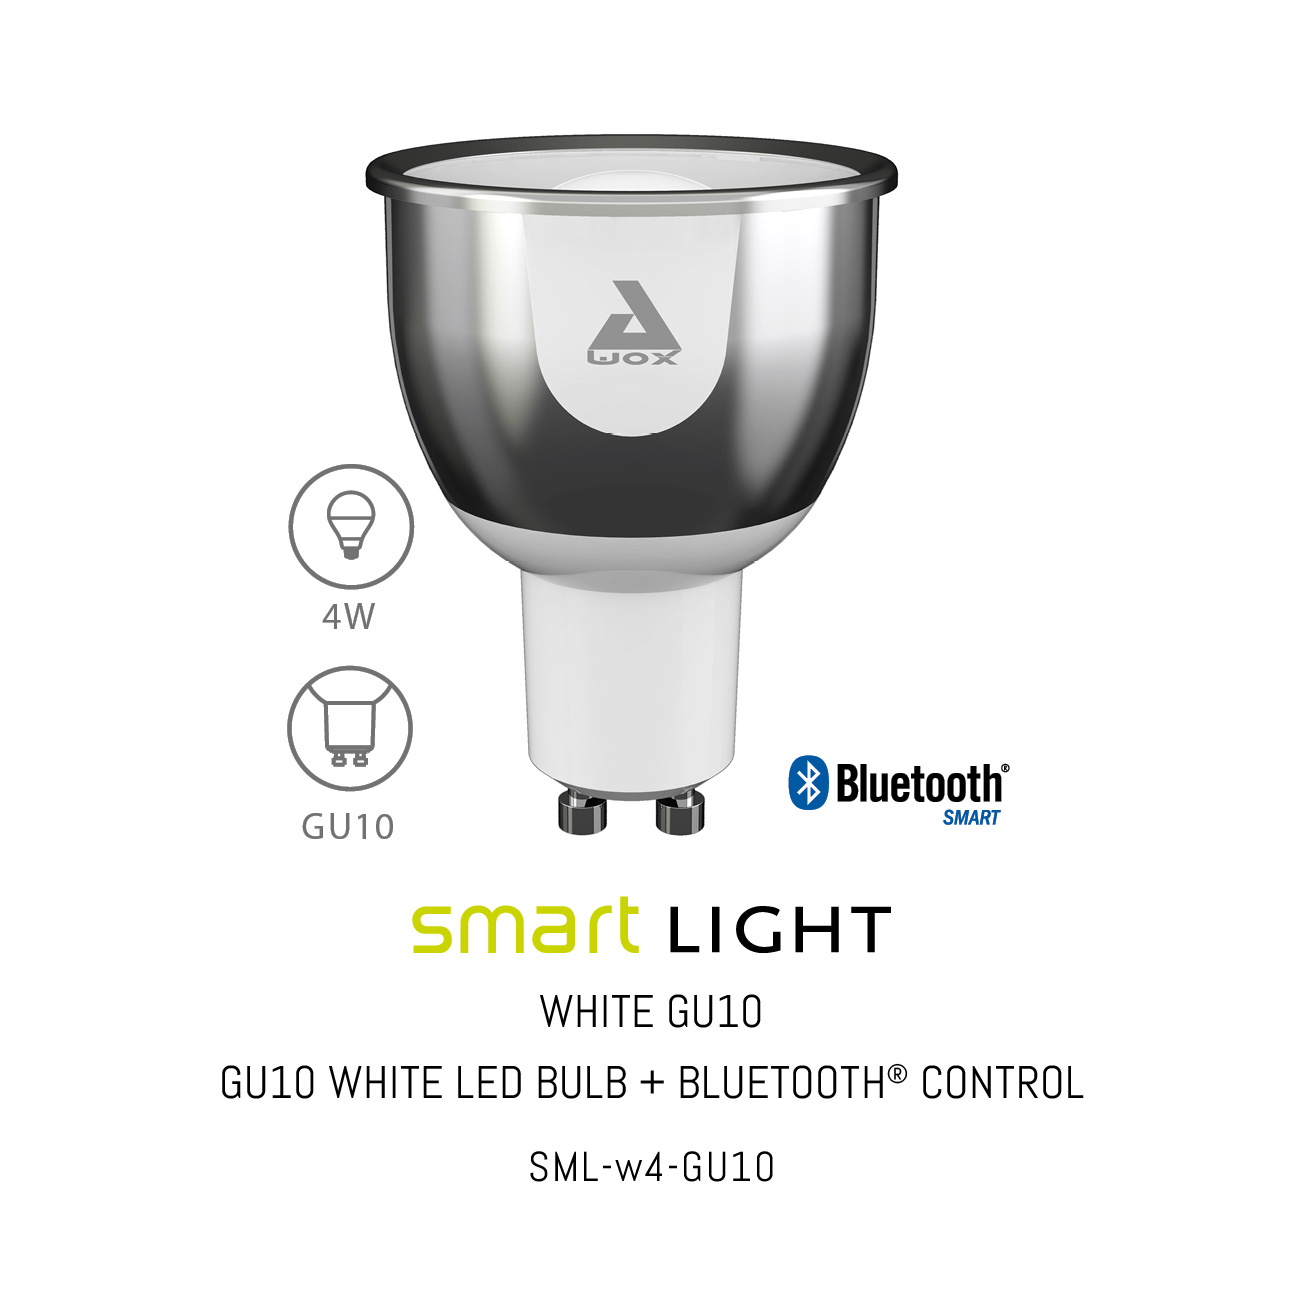 SML-W4 GU10, Smart light BT control, white